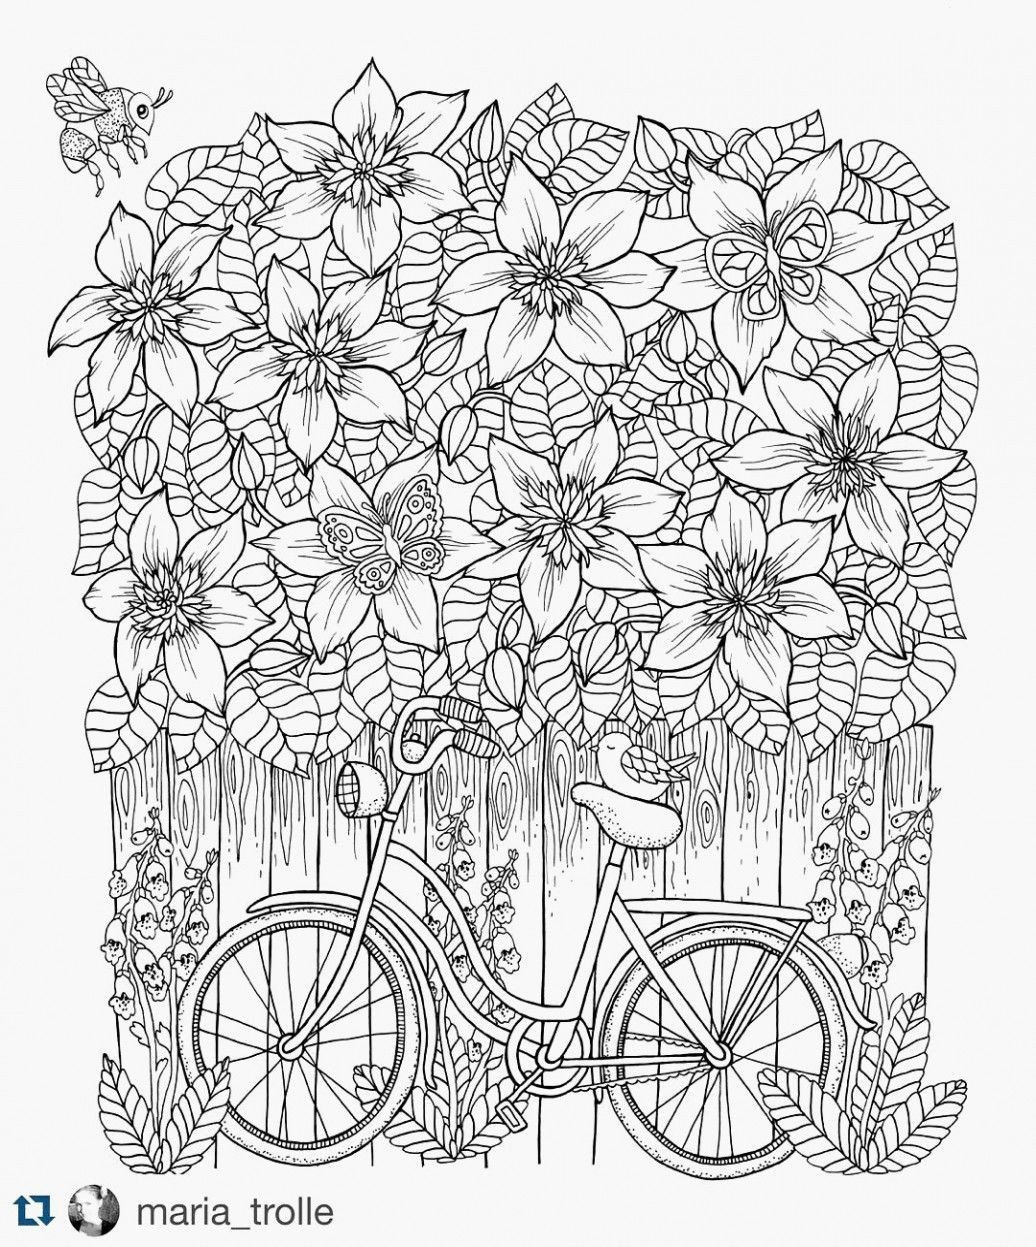 Human Heart Coloring Pages Best Of Unique Heart Coloring Pages For Adults In 2020 Cool Coloring Pages Dragon Coloring Page Halloween Coloring Pages